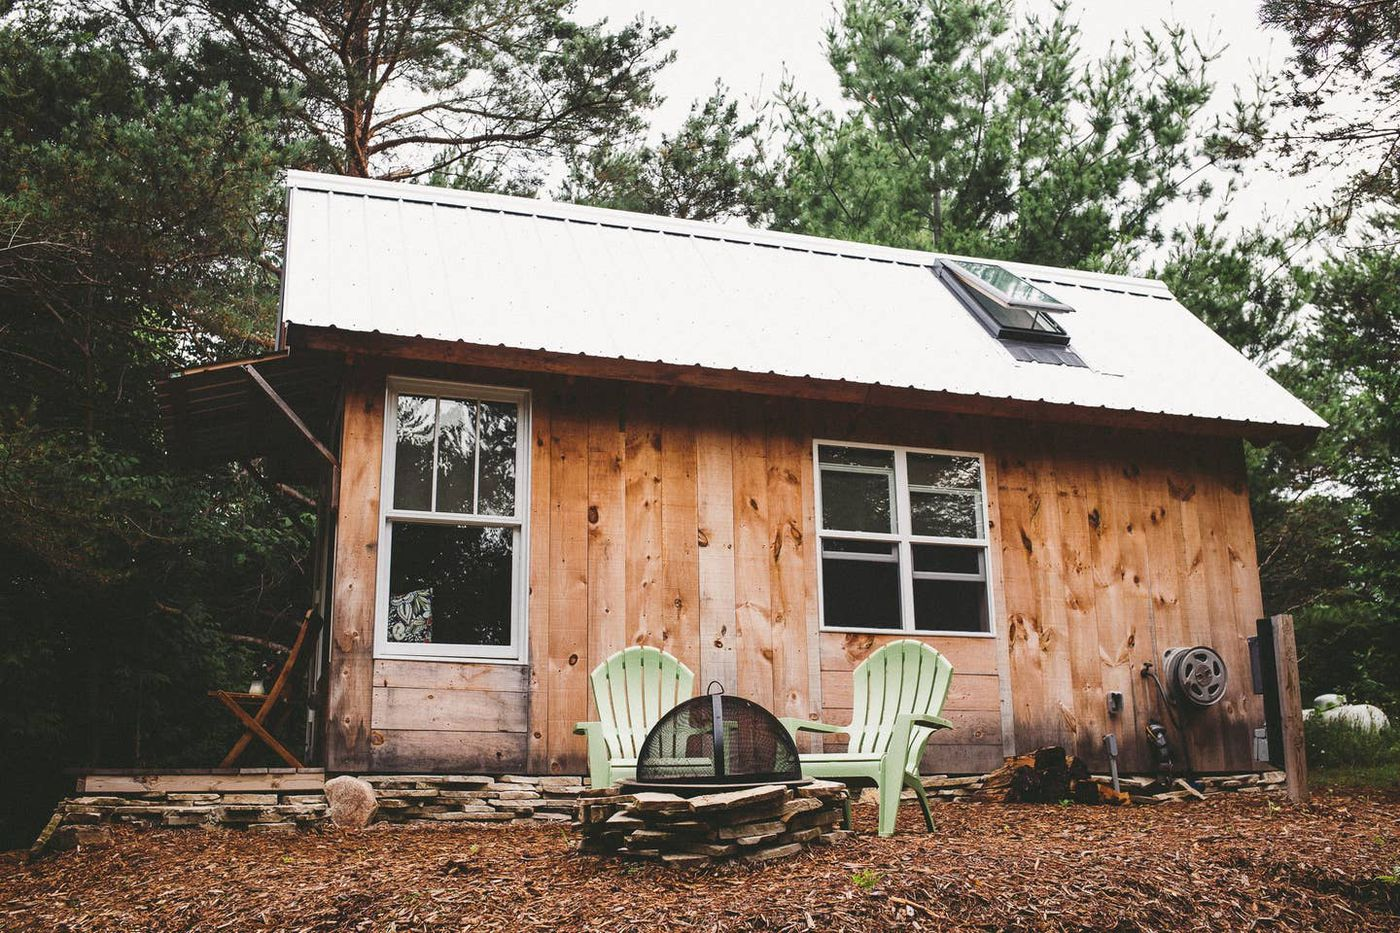 Detroit getaways: 7 cozy cabins to rent Up North for Labor